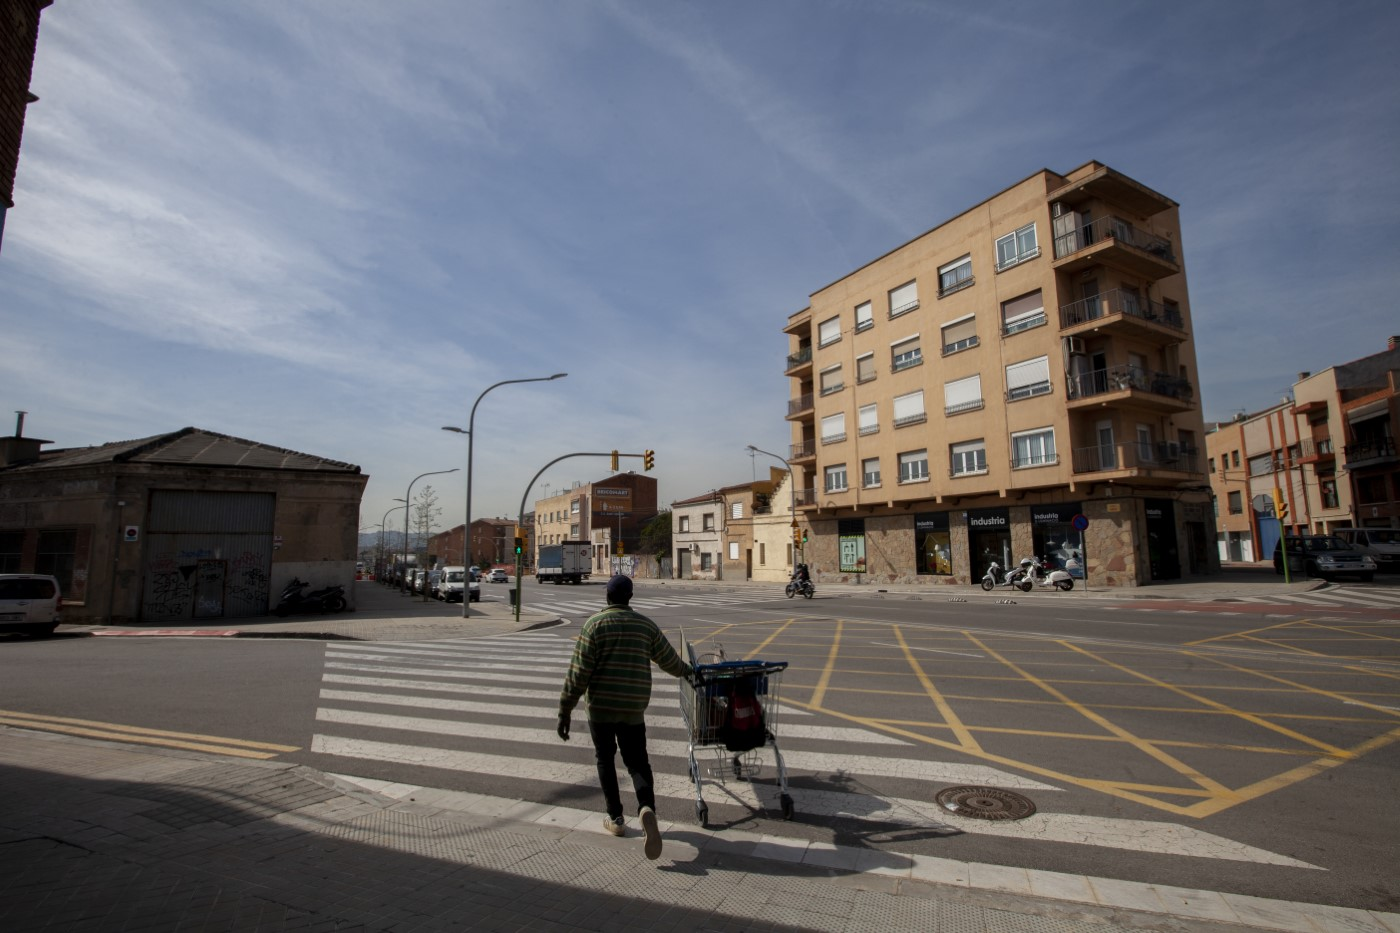 Modou continues walking in the heart of the city of Sabadell. They have already traveled a few kilòmetres.